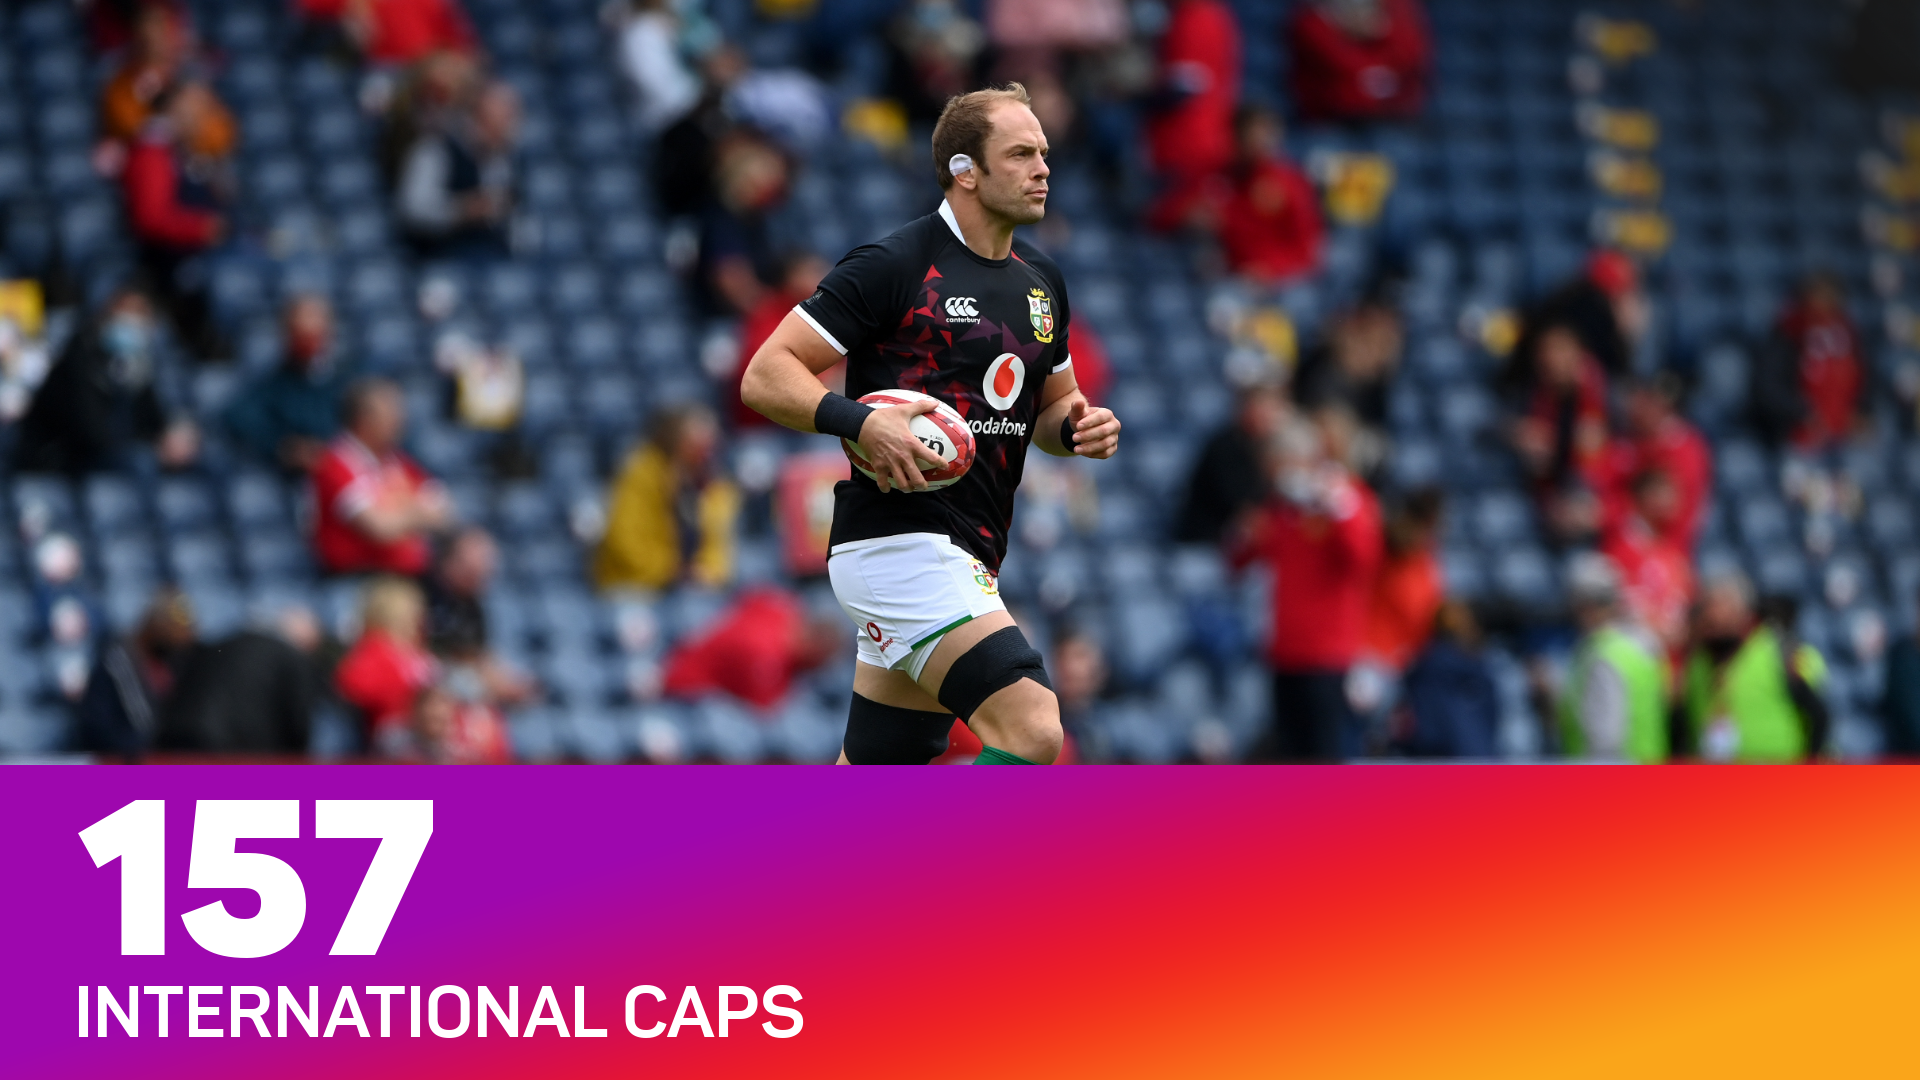 Alun Wyn Jones is the most capped player in history